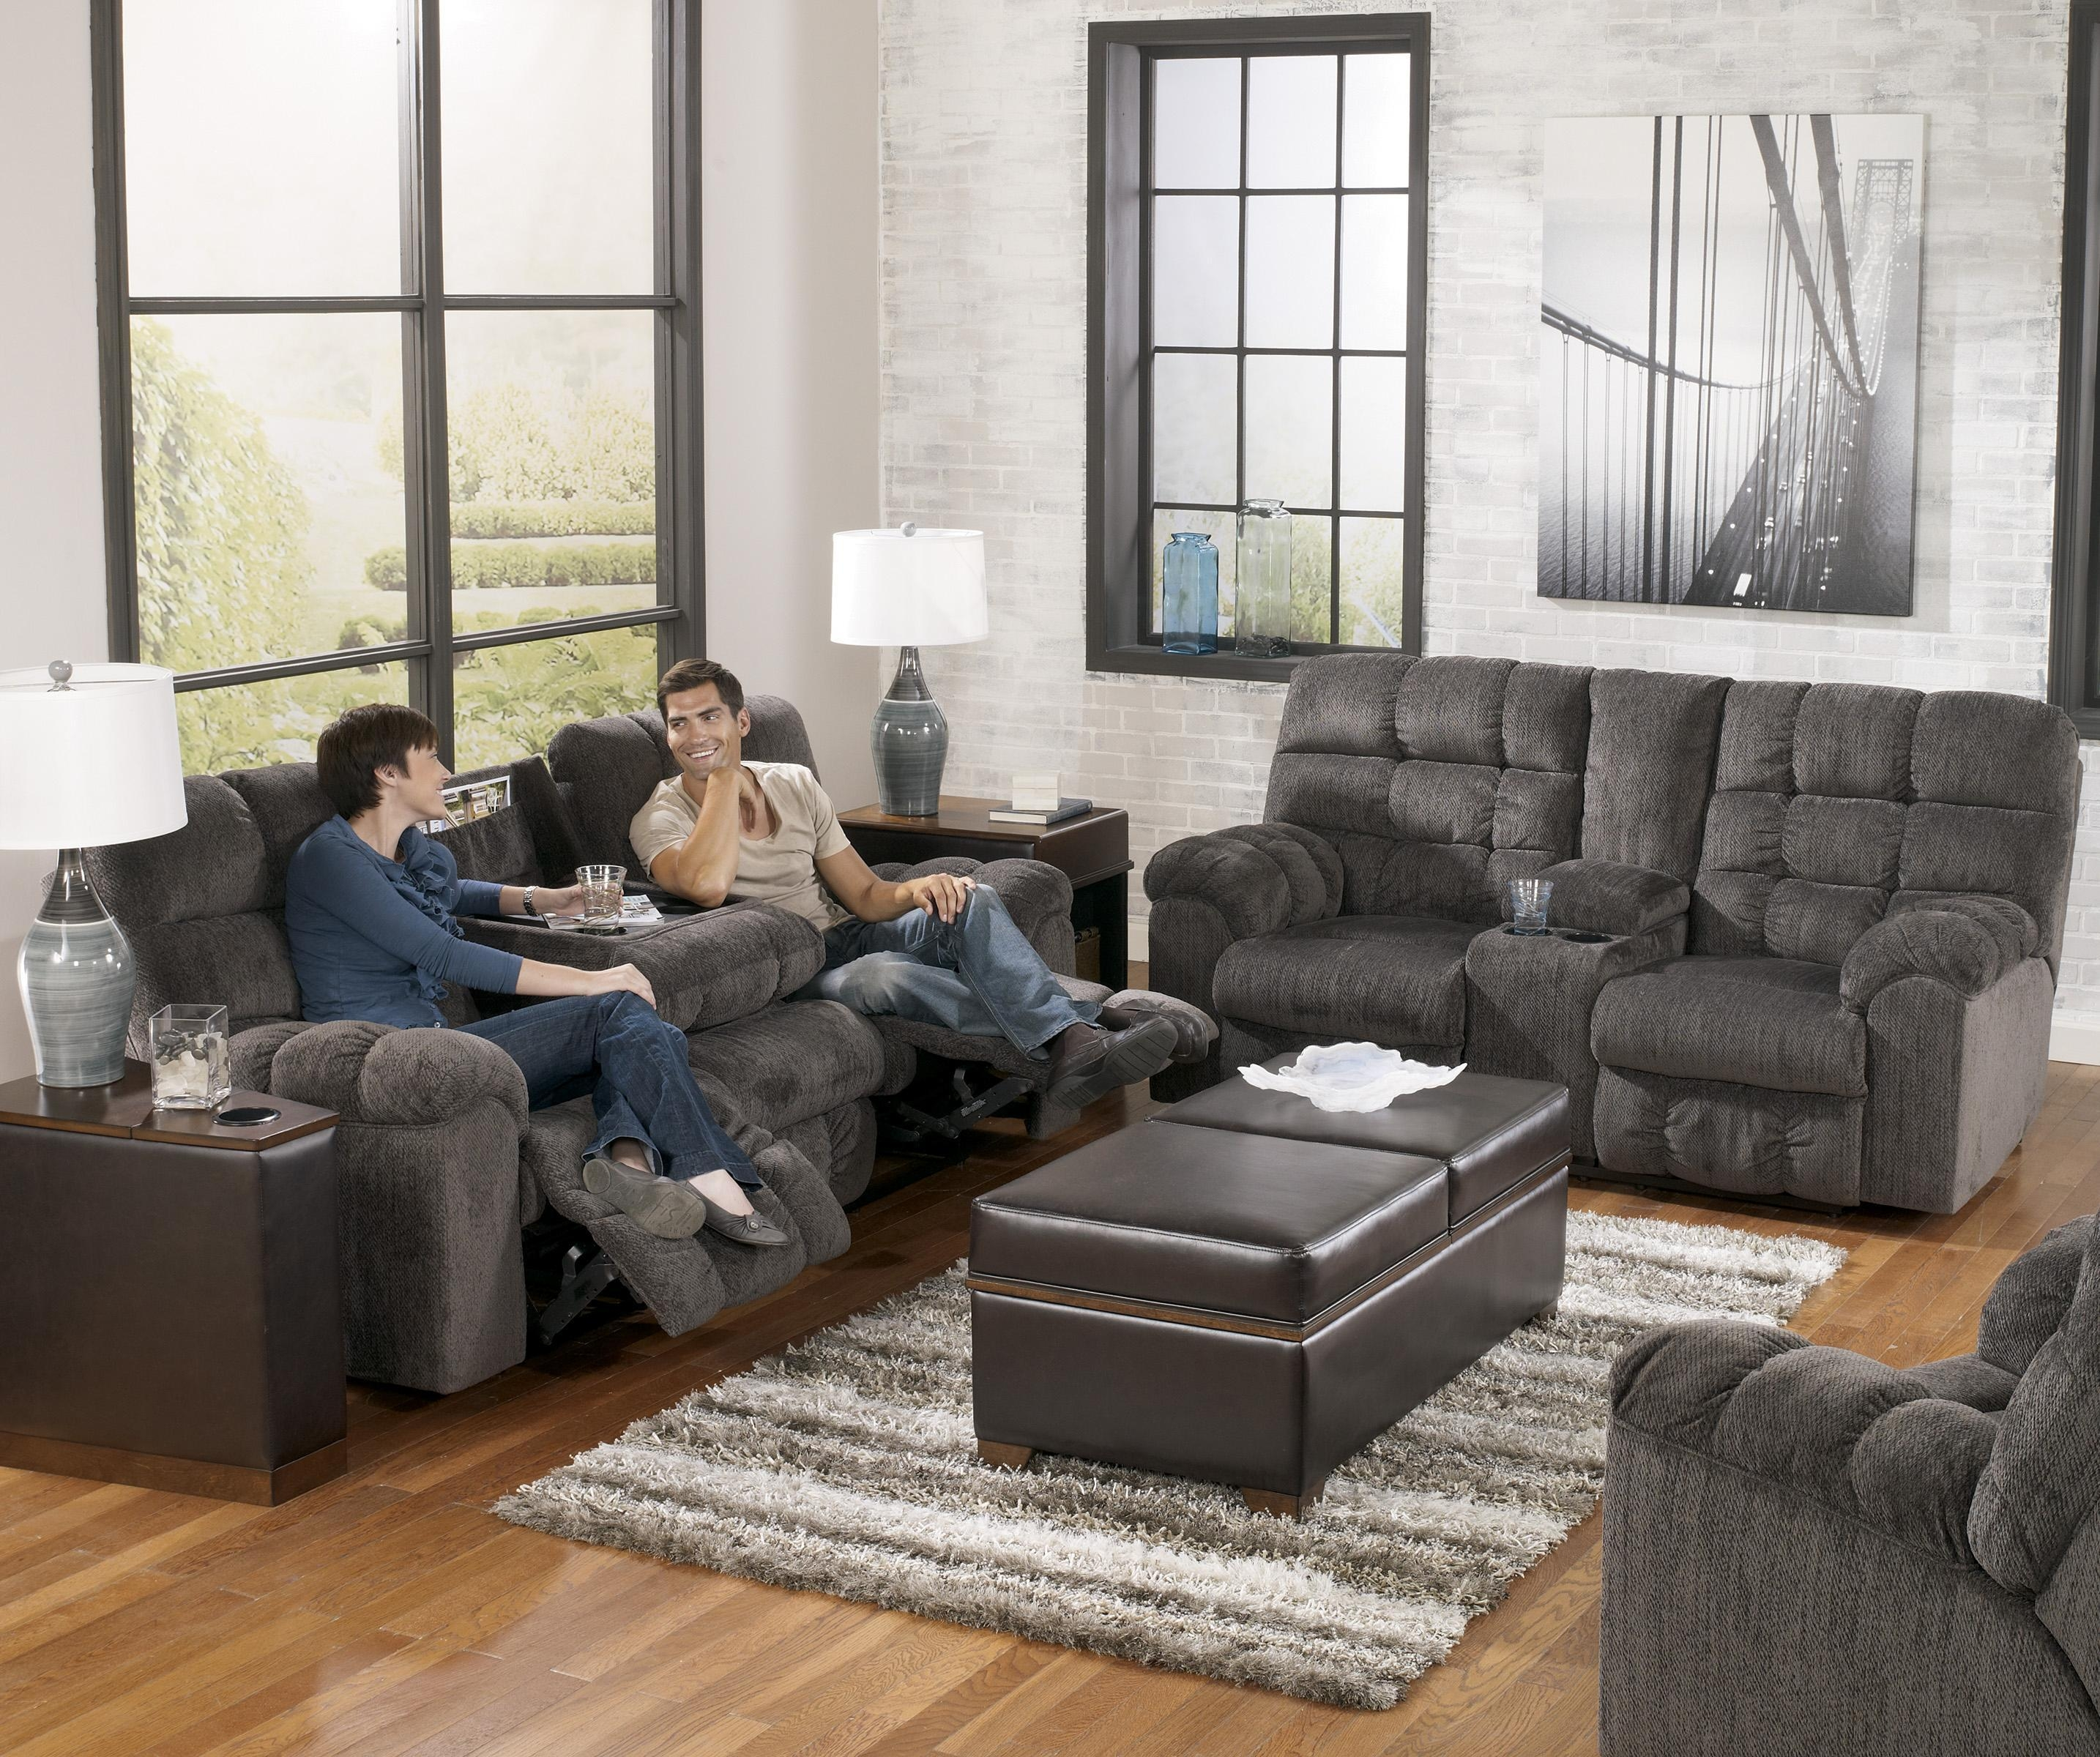 Reclining Sofa With Drop Down Table And Cup Holderssignature For Sectional With Cup Holders (View 12 of 20)